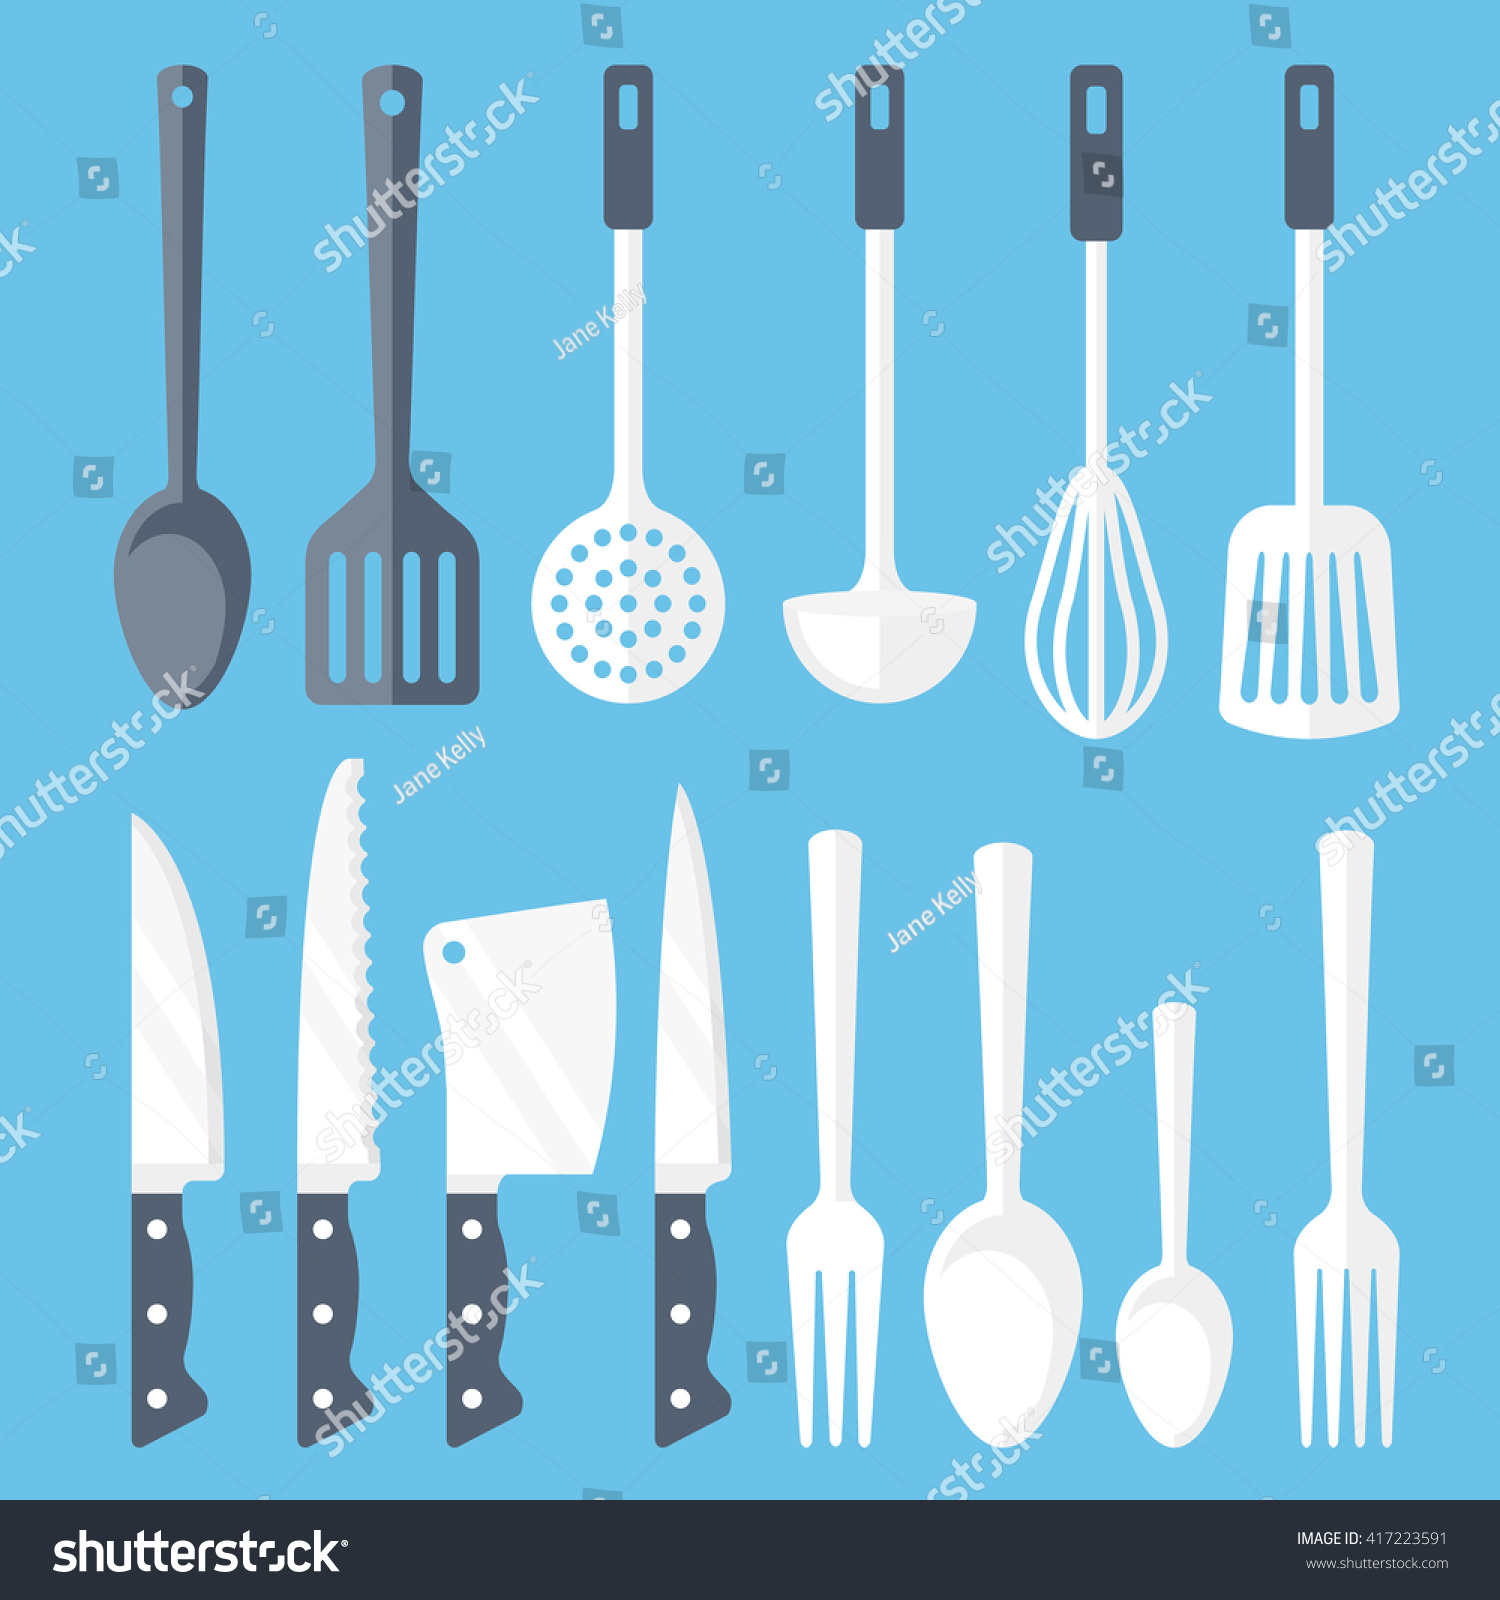 Kitchen Tools Flat Icons Set Colorful Stock Vector HD (Royalty Free ...